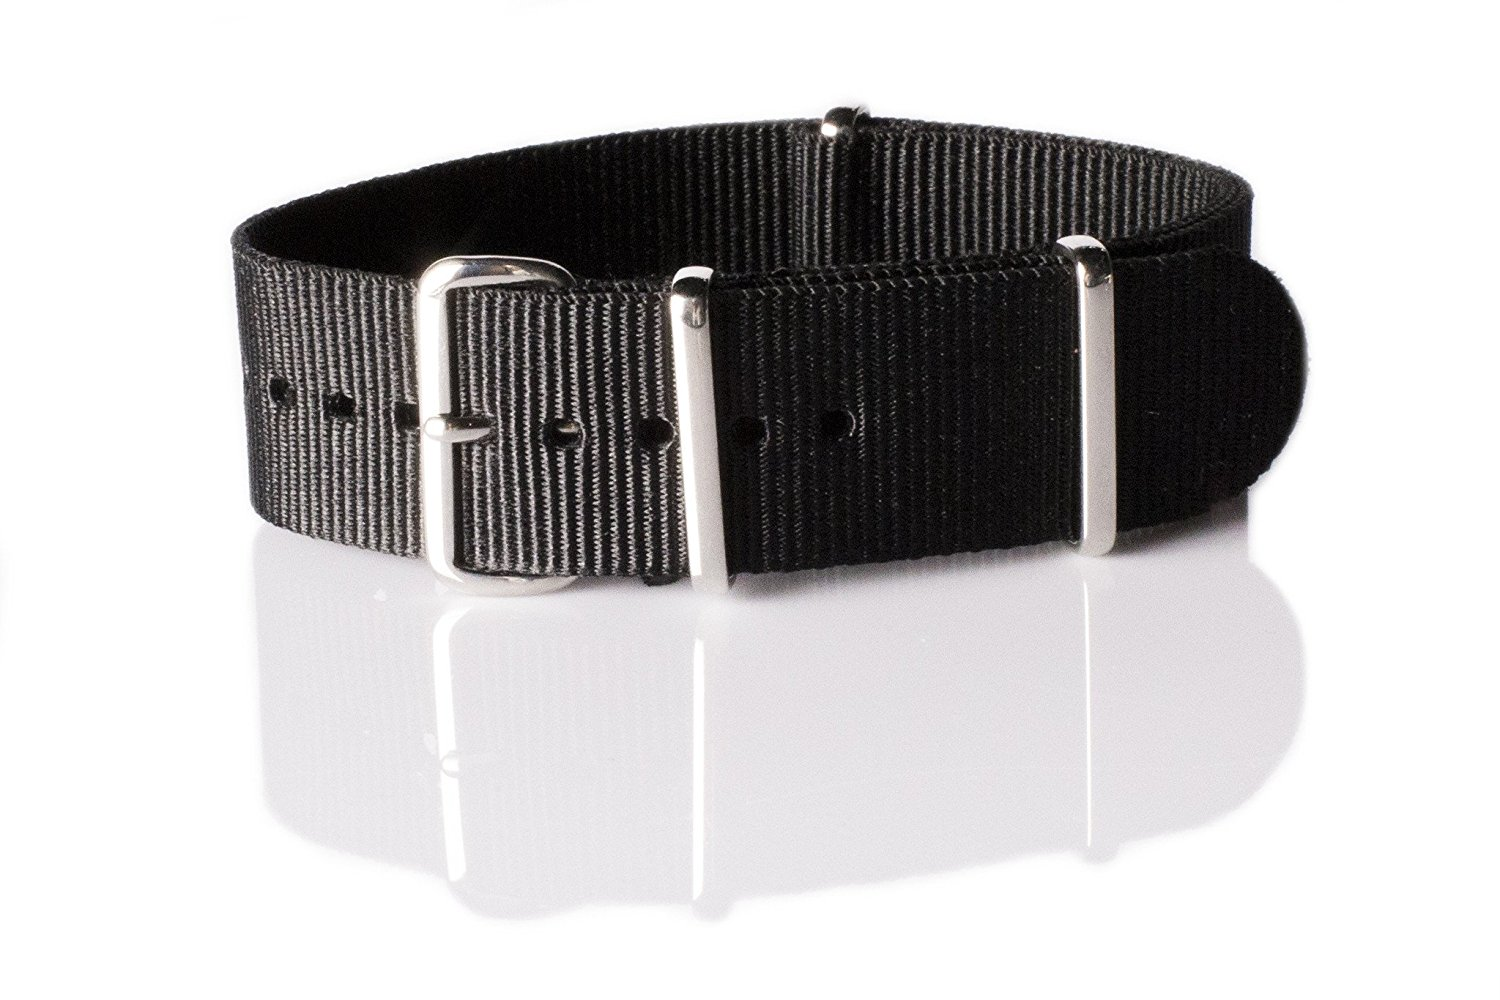 NATO G10 Nylon Premium Quality Replacement Watch Band Strap - 22mm / Black - FITS ALL WATCHES - (Military Army, J. Crew, Timex Weekender, Daniel Wellington, Urban Outfitters, Luminox, Seiko, Citizen, Blackout Watches, Victorinox Swiss Army, Rolex and more‎)